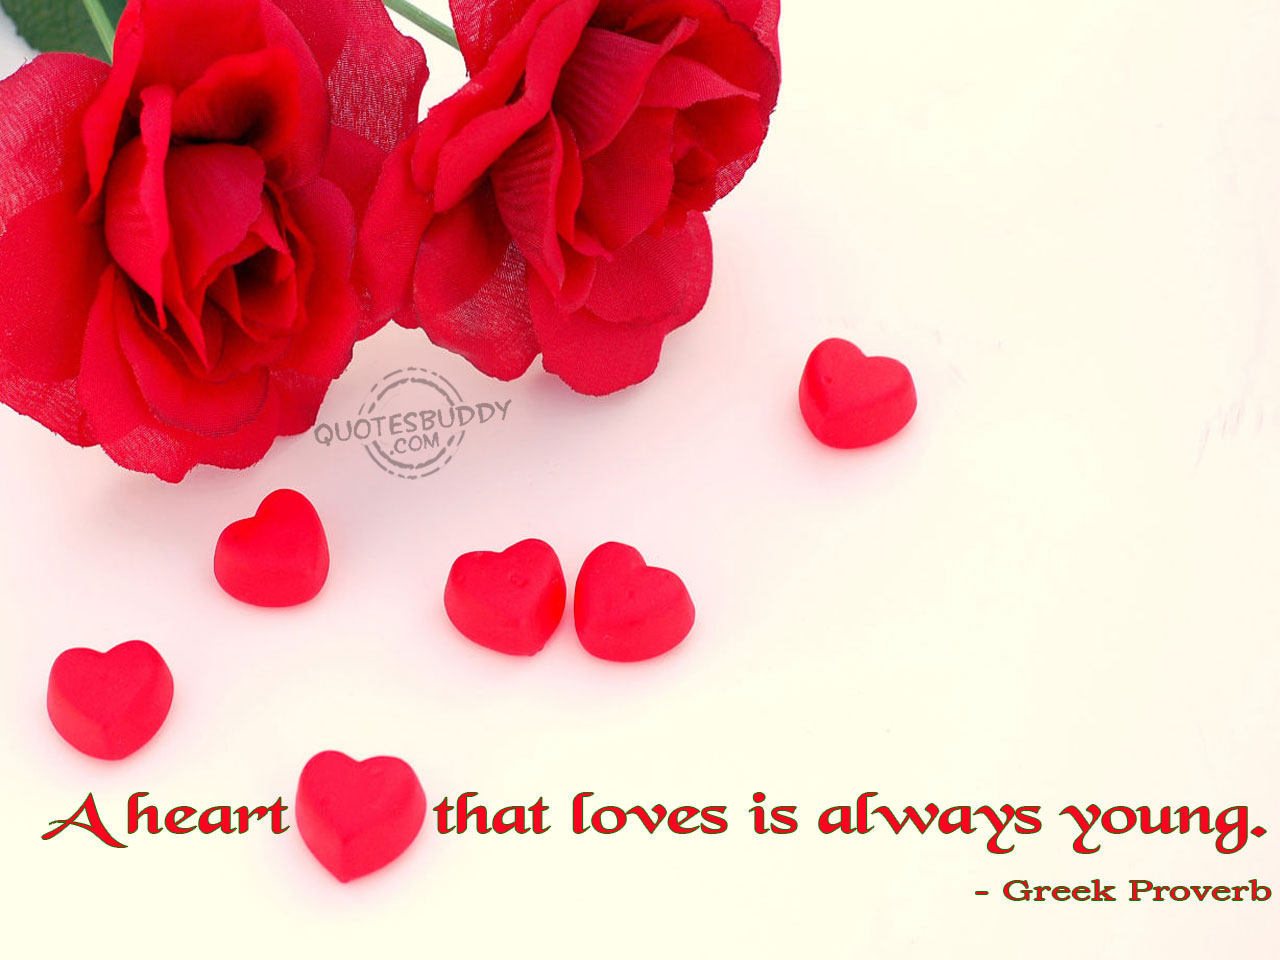 love quotes wallpaper,petal,red,valentine's day,pink,heart